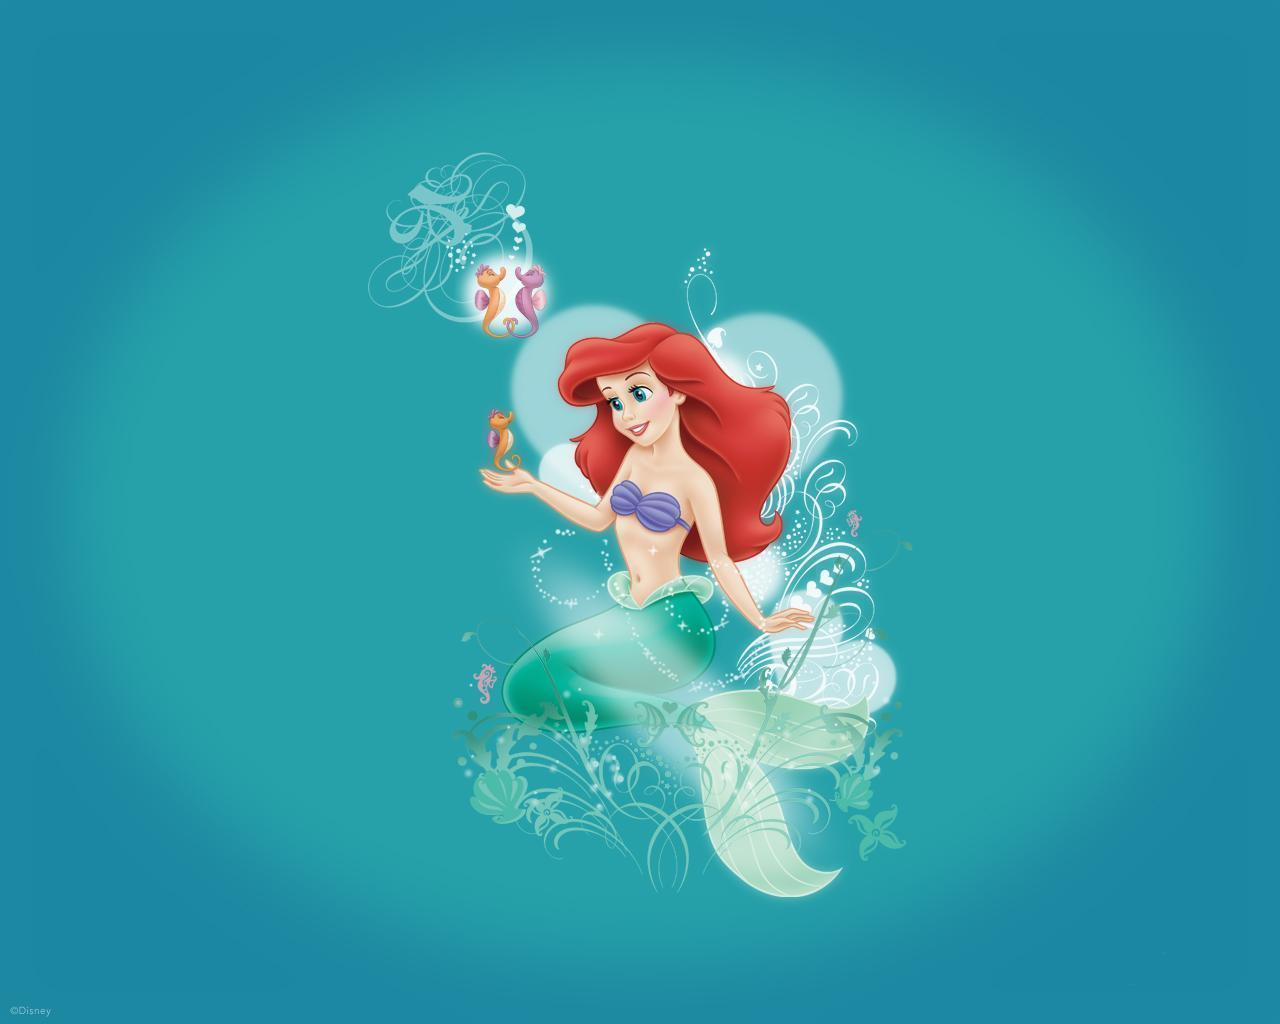 Mermaid iphone wallpaper tumblr - The Little Mermaid Ariel Wallpapers Hd